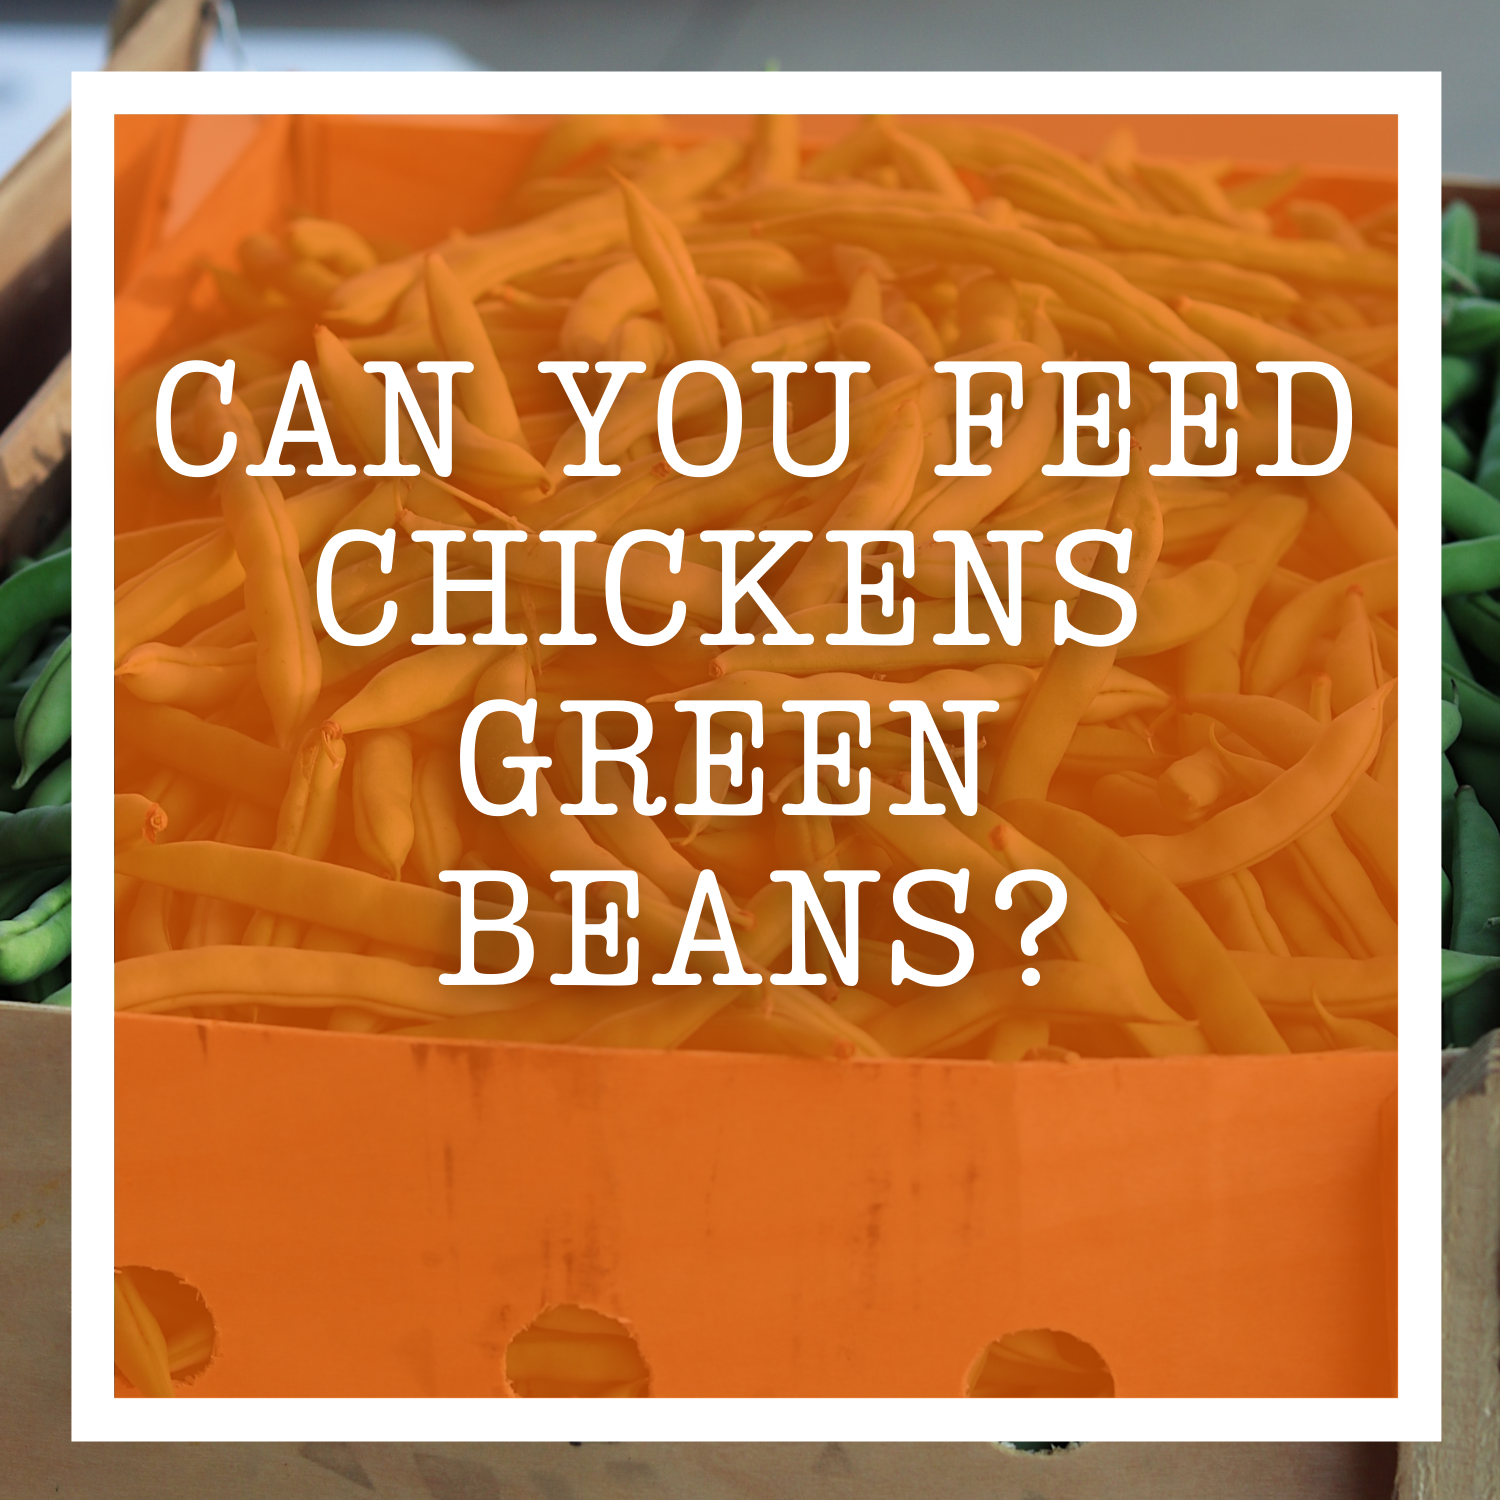 Can You Feed Chickens Green Beans?